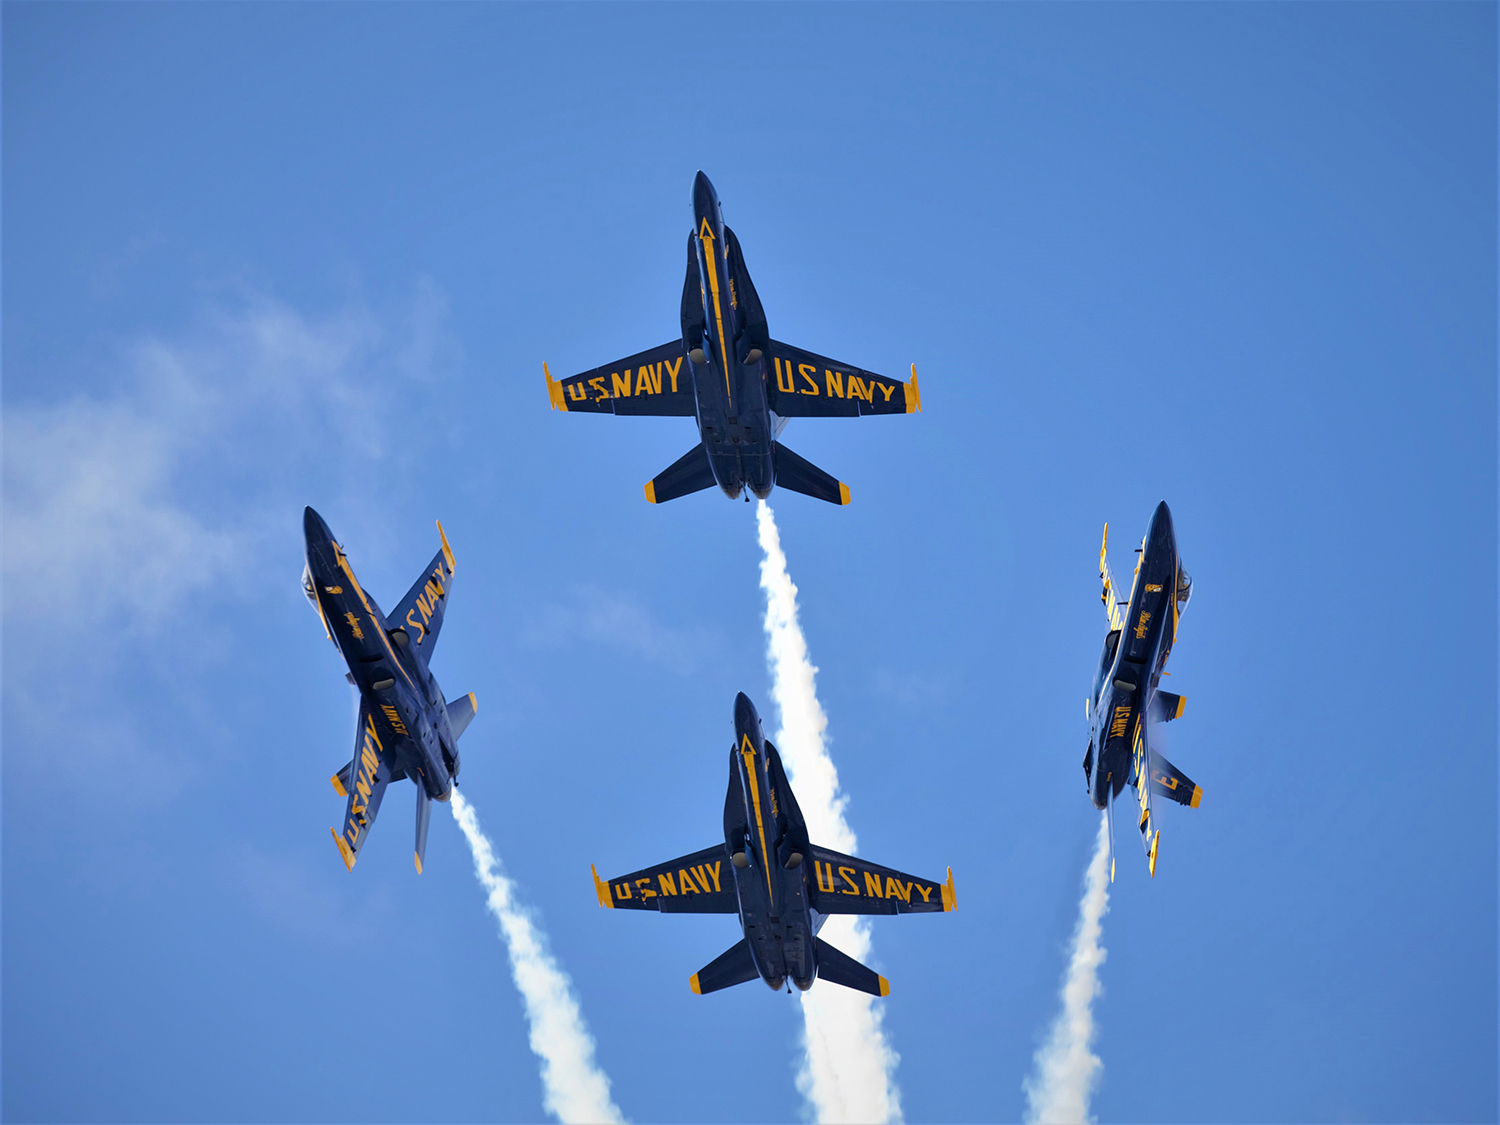 The U.S. Navy Blue Angels demonstrate the capabilities of the F/A-18 Hornet at the 2019 Marine Corps Air Station Miramar Air Show on MCAS Miramar, Calif., Sept. 28. (Pfc. Mackson/Marine Corps)